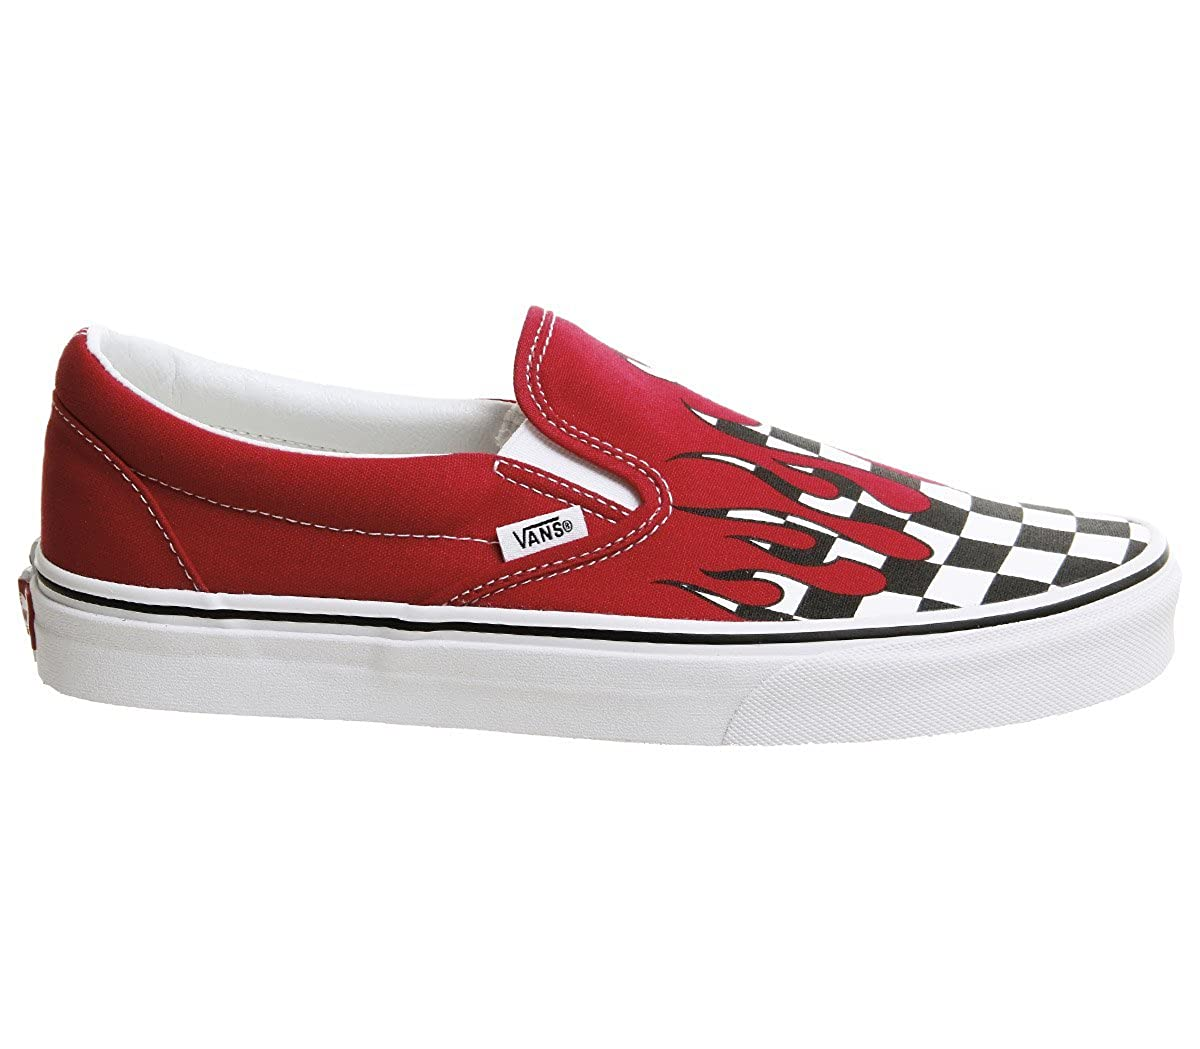 5603a1aab5 Vans - Sneakers - Classic Slip-ON Checker Flame Racing RED  Amazon.co.uk   Shoes   Bags